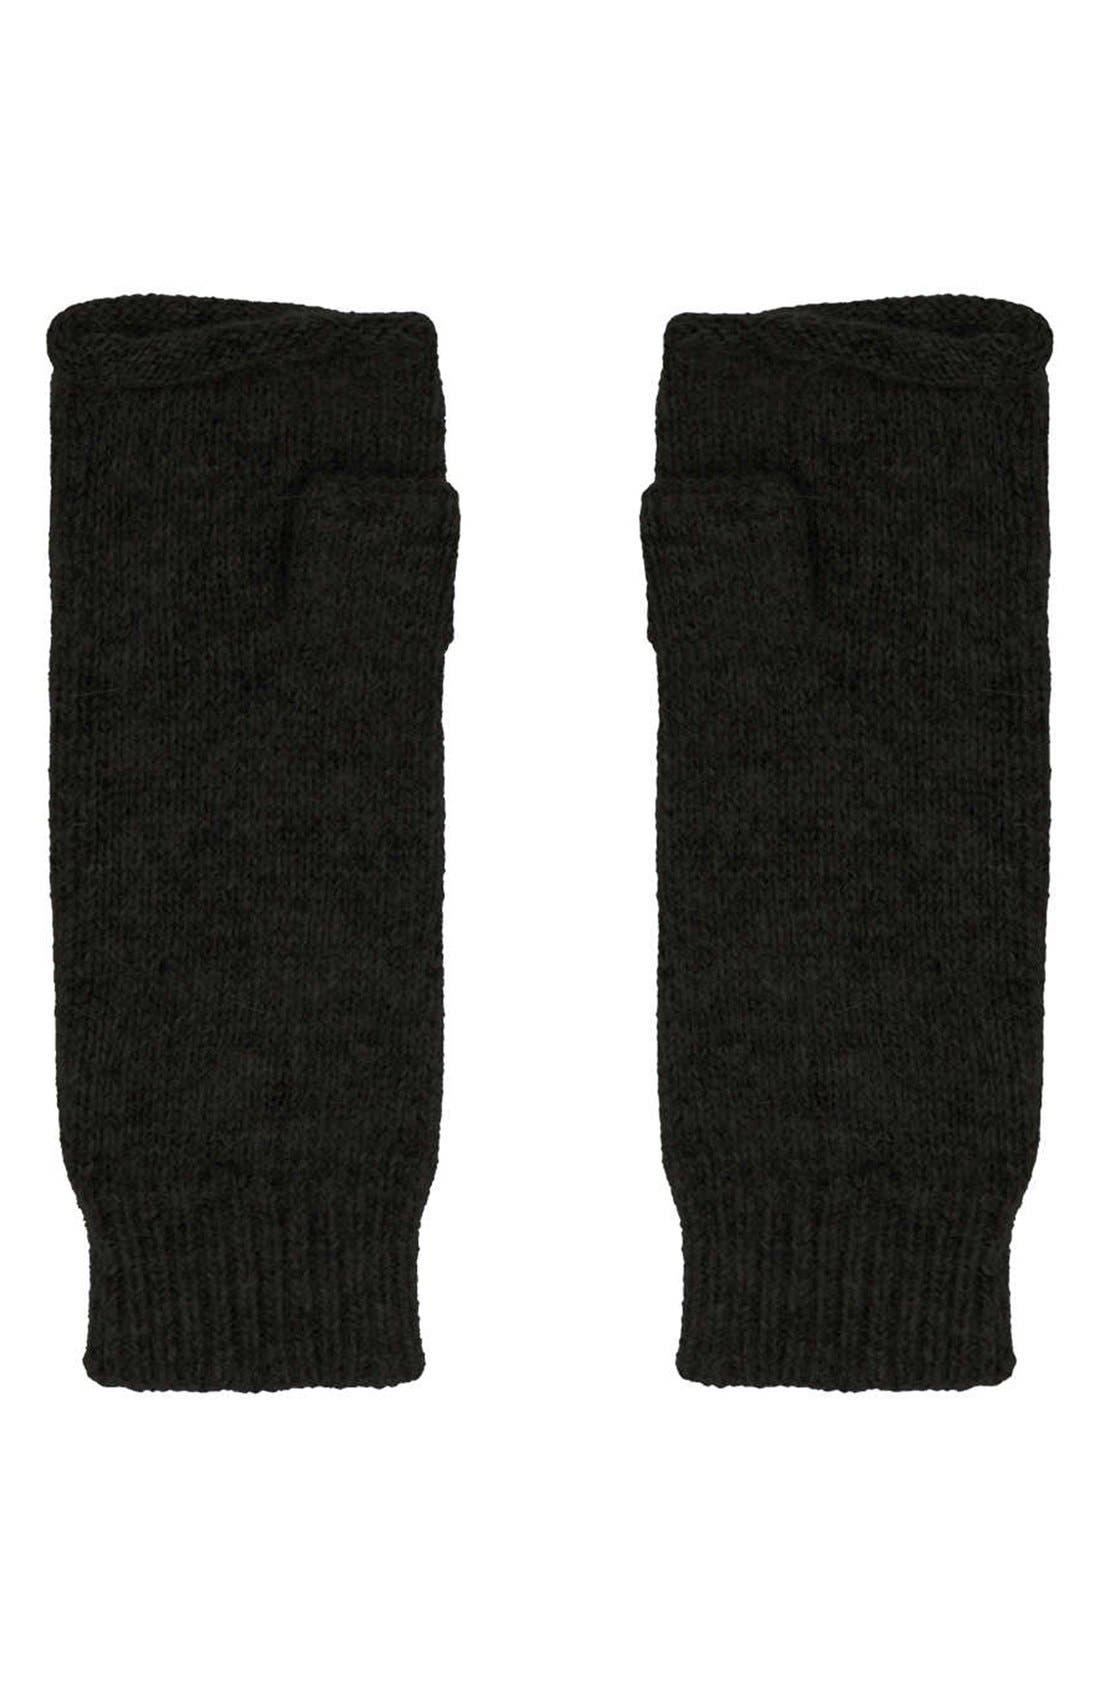 Main Image - Topshop Fingerless Gloves